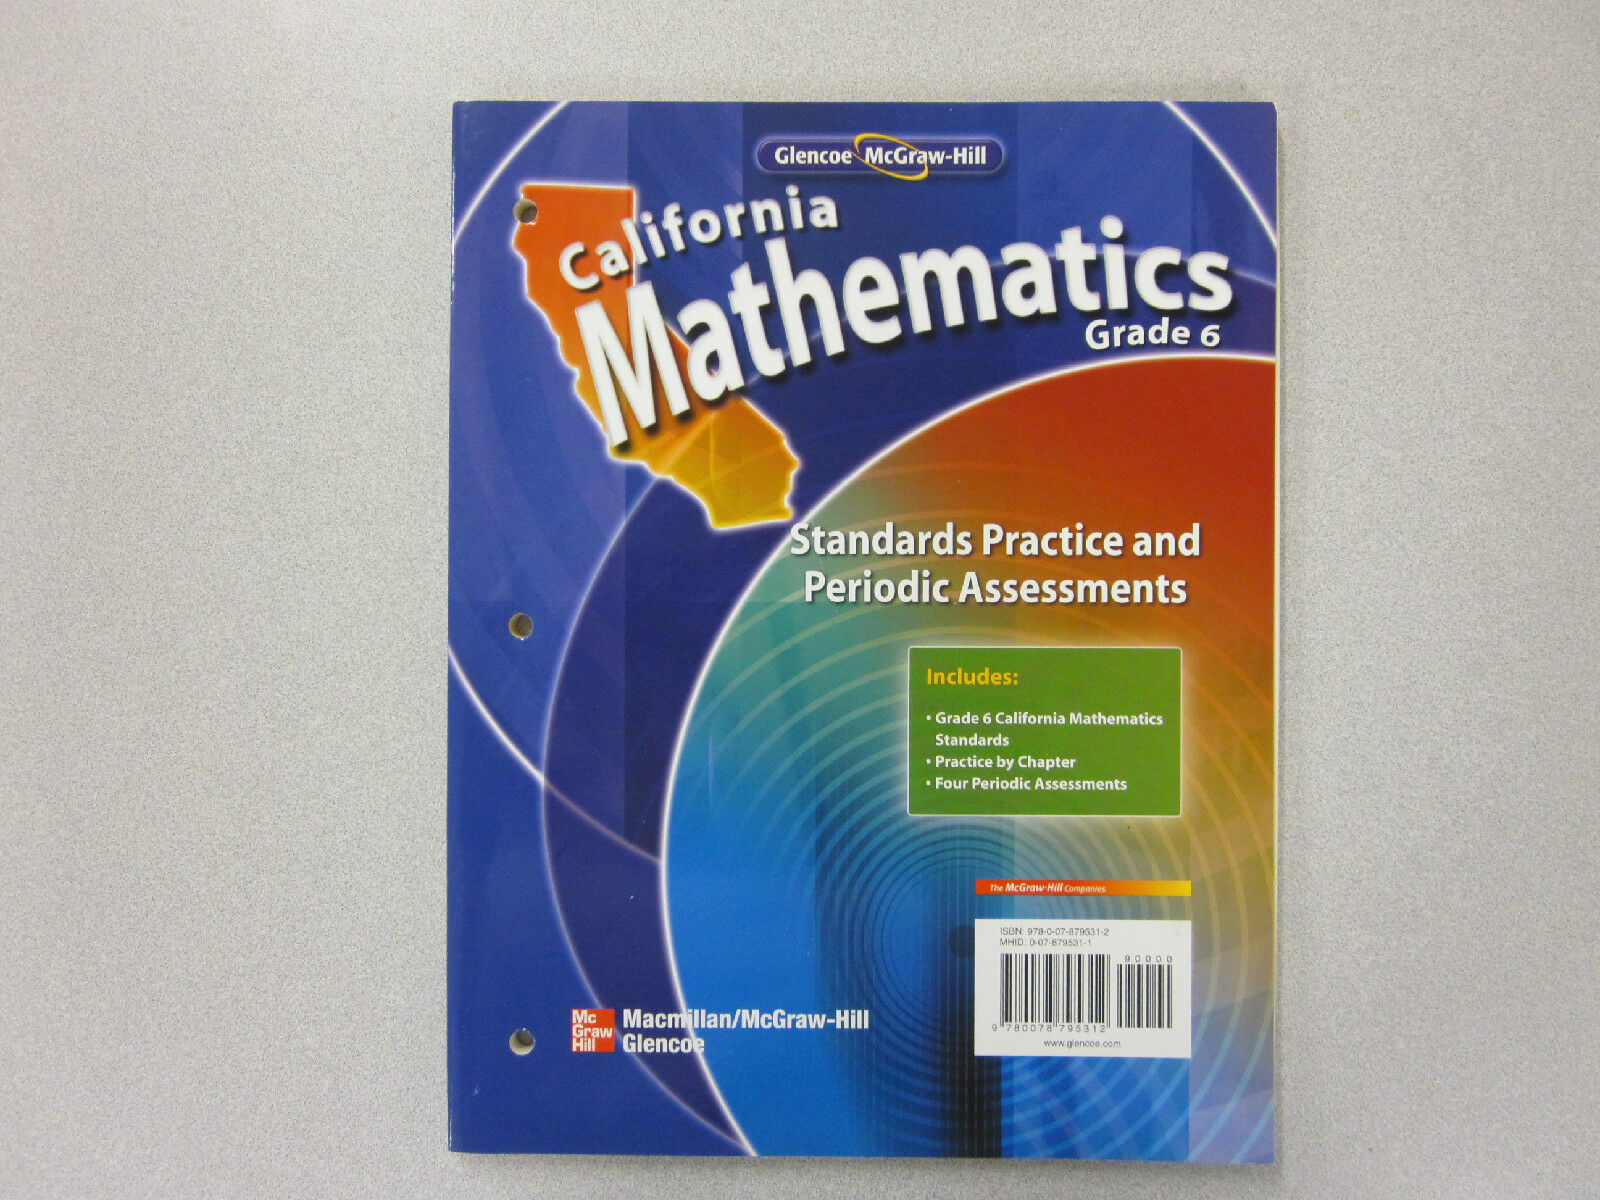 California Mathematics Grade 6 Standards Practice and Periodic Assessments  for sale online   eBay